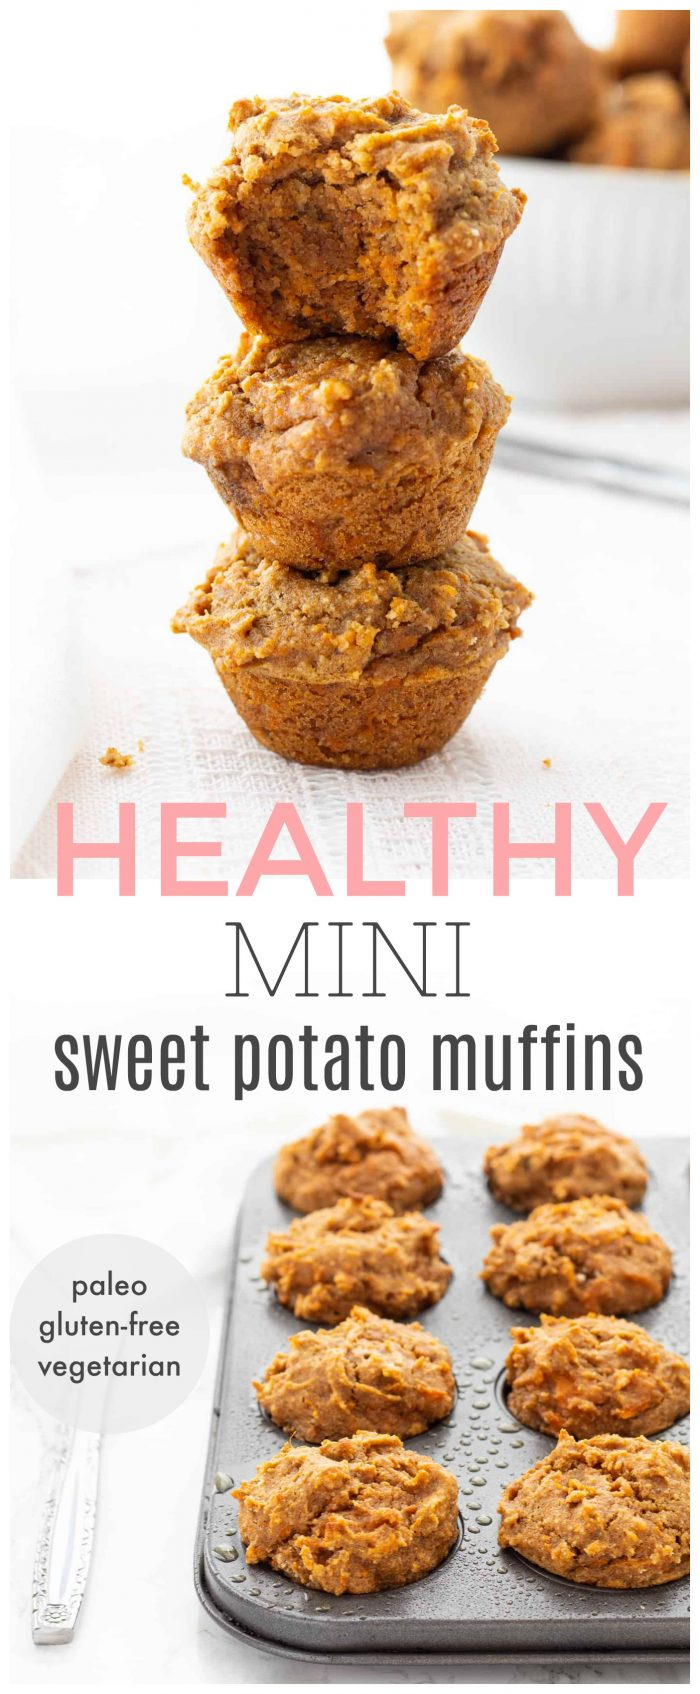 These mini sweet potato muffins make a delicious snack for the whole family! They're packed with nutrients, low in sugar and super moist and flavourful. The perfect little bite for babies, toddlers, older children and adults! {paleo, gluten-free, refined sugar-free & vegetarian}